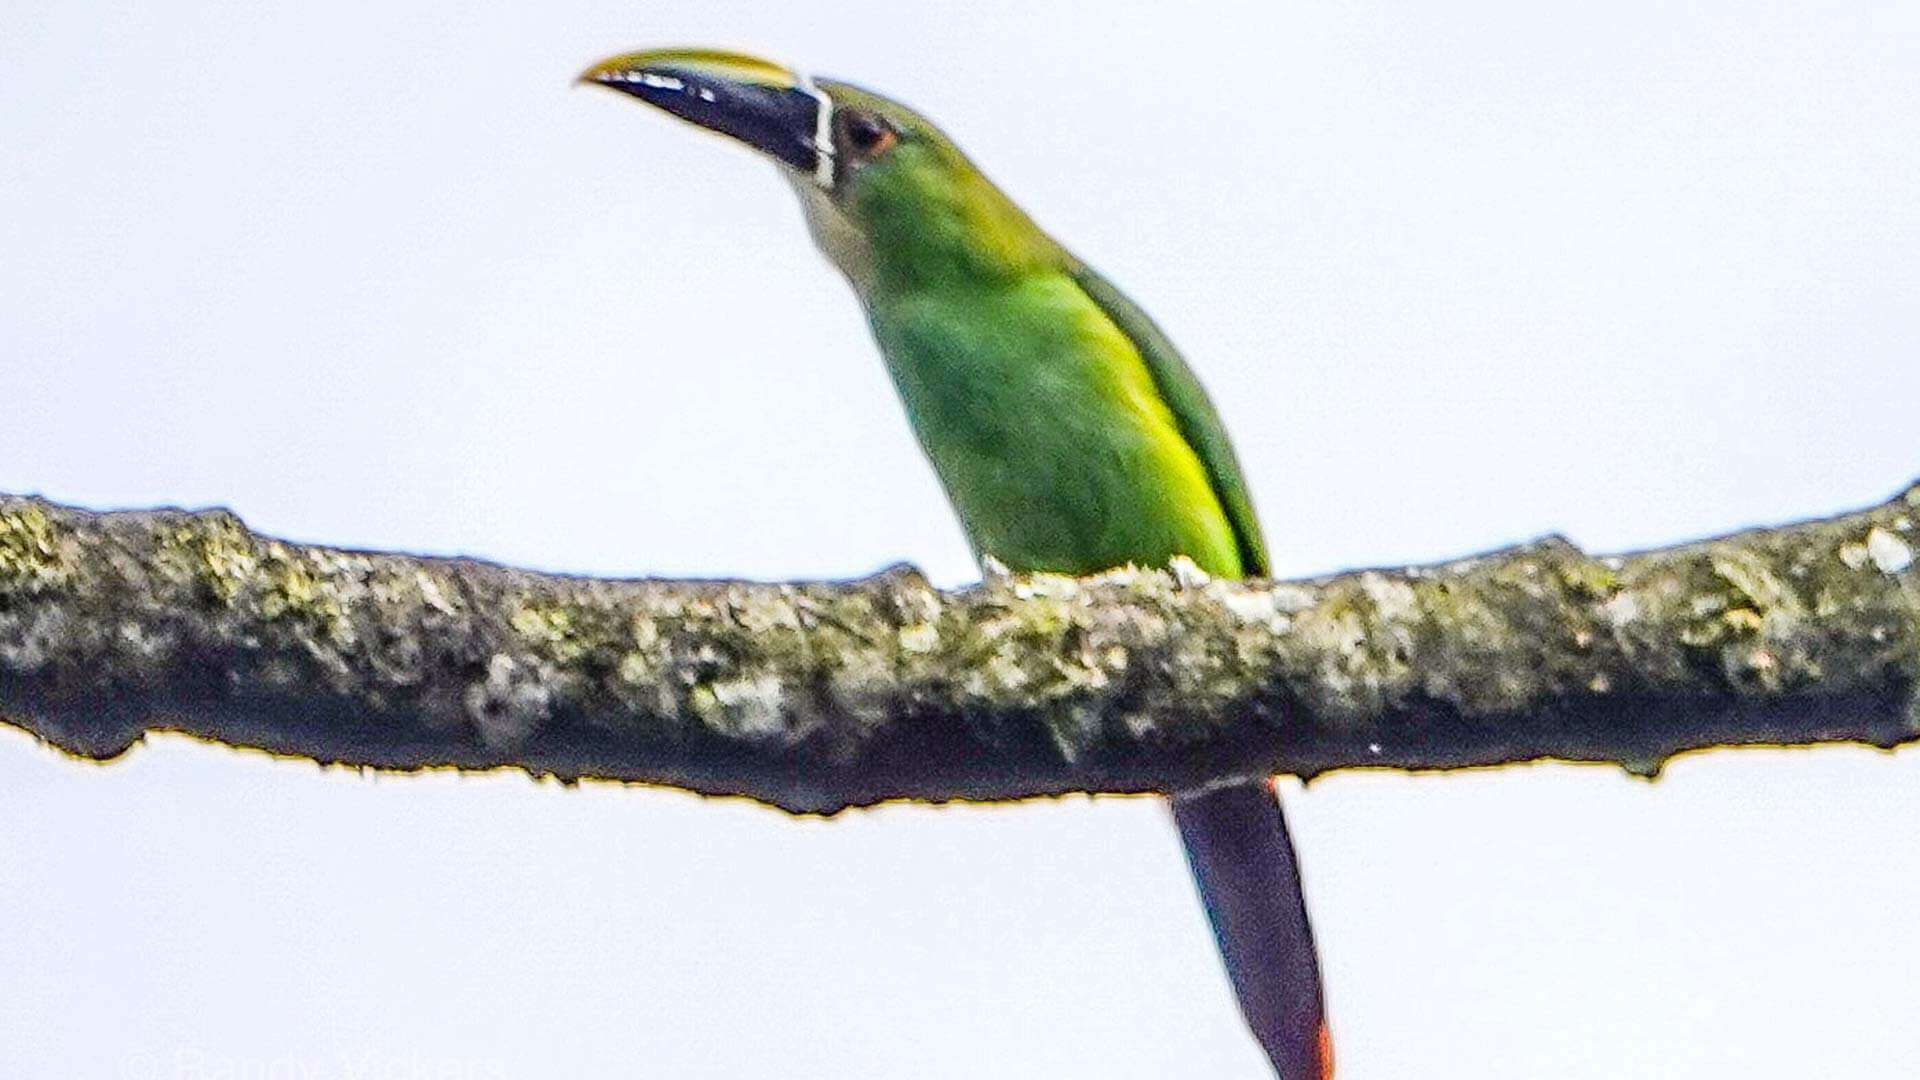 green toucan sitting on a branch